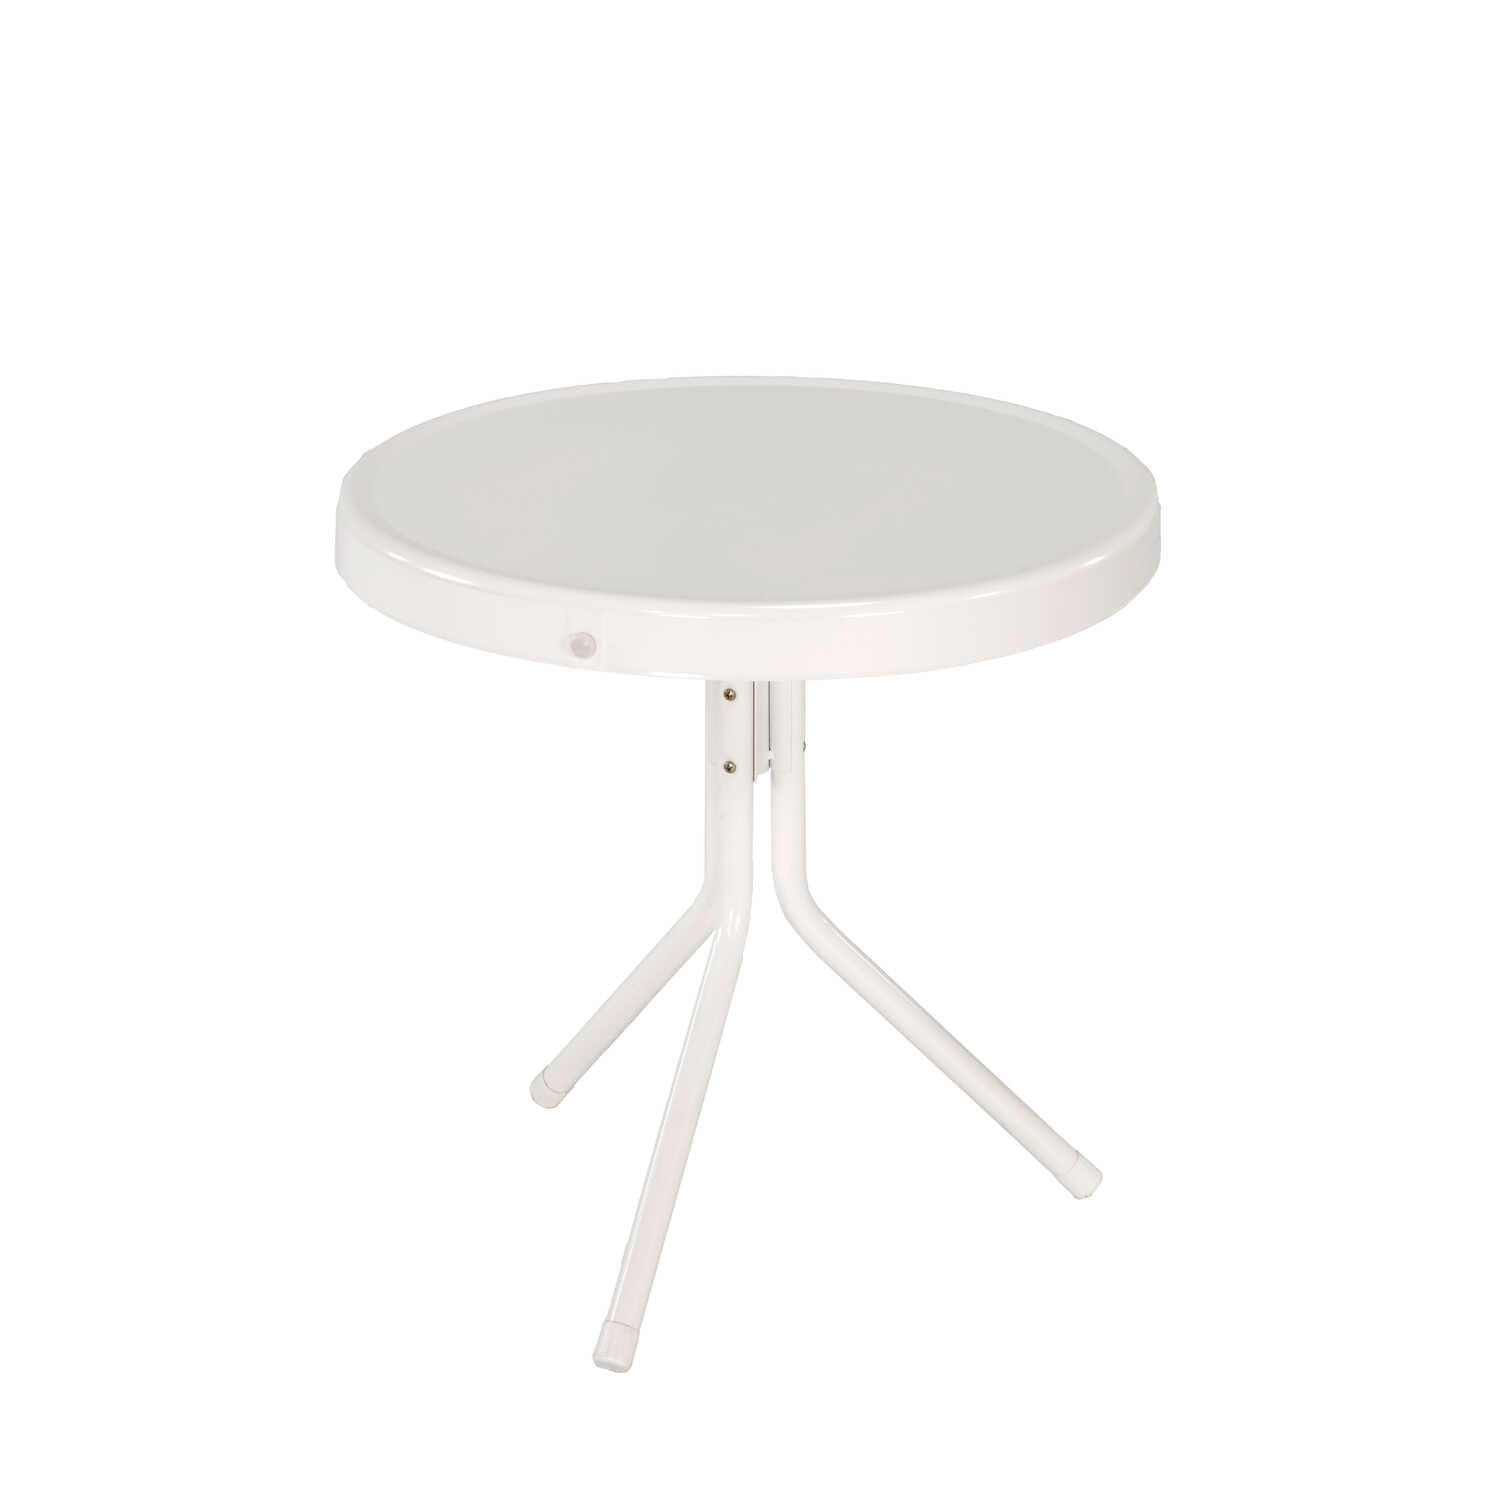 Jack Post  White  Retro  Round  Steel  Side Table